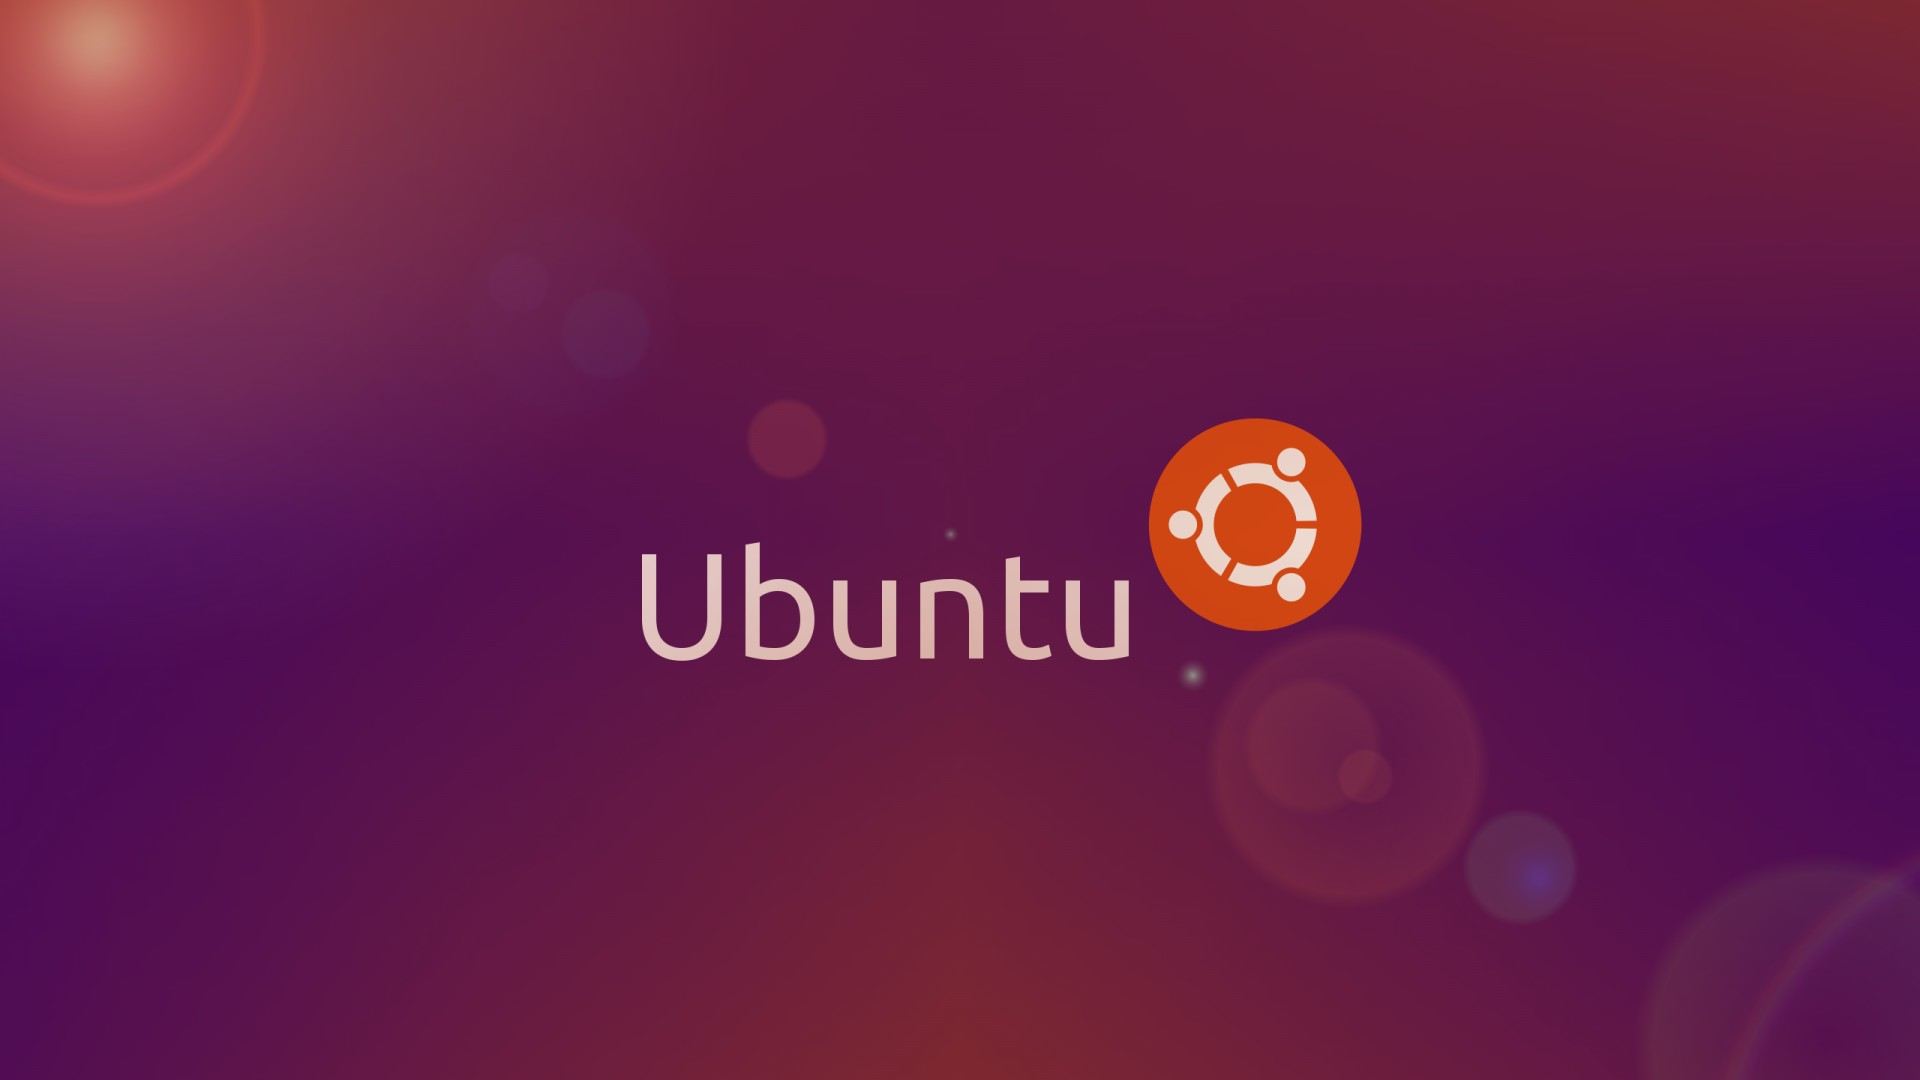 Ubuntu Wallpaper Fullscreen HD #5360 Wallpaper